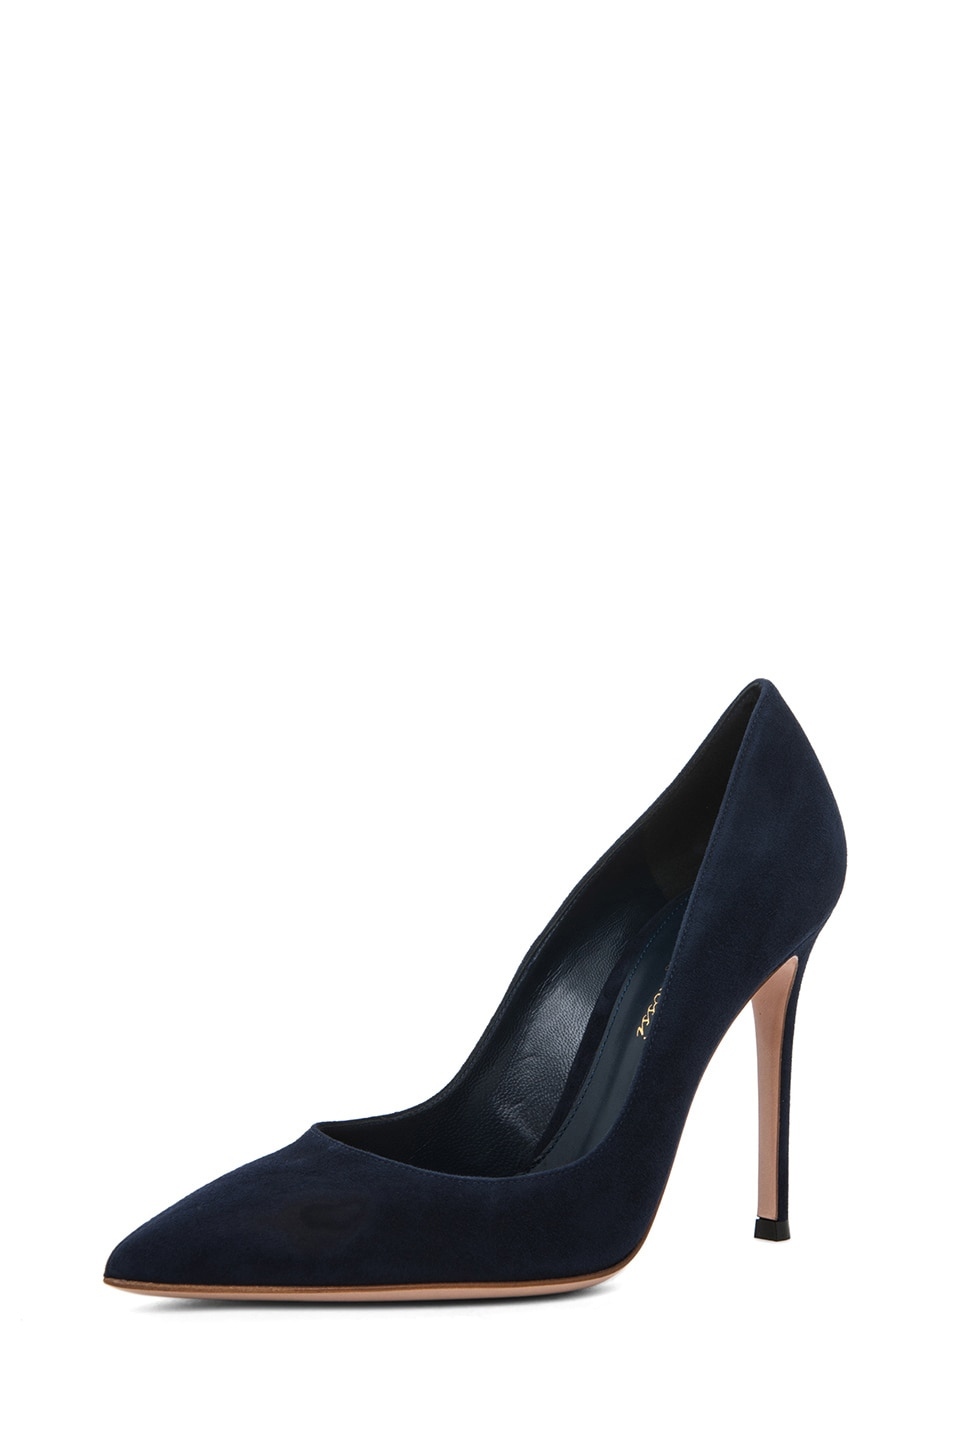 Image 2 of Gianvito Rossi Suede Pump in Navy